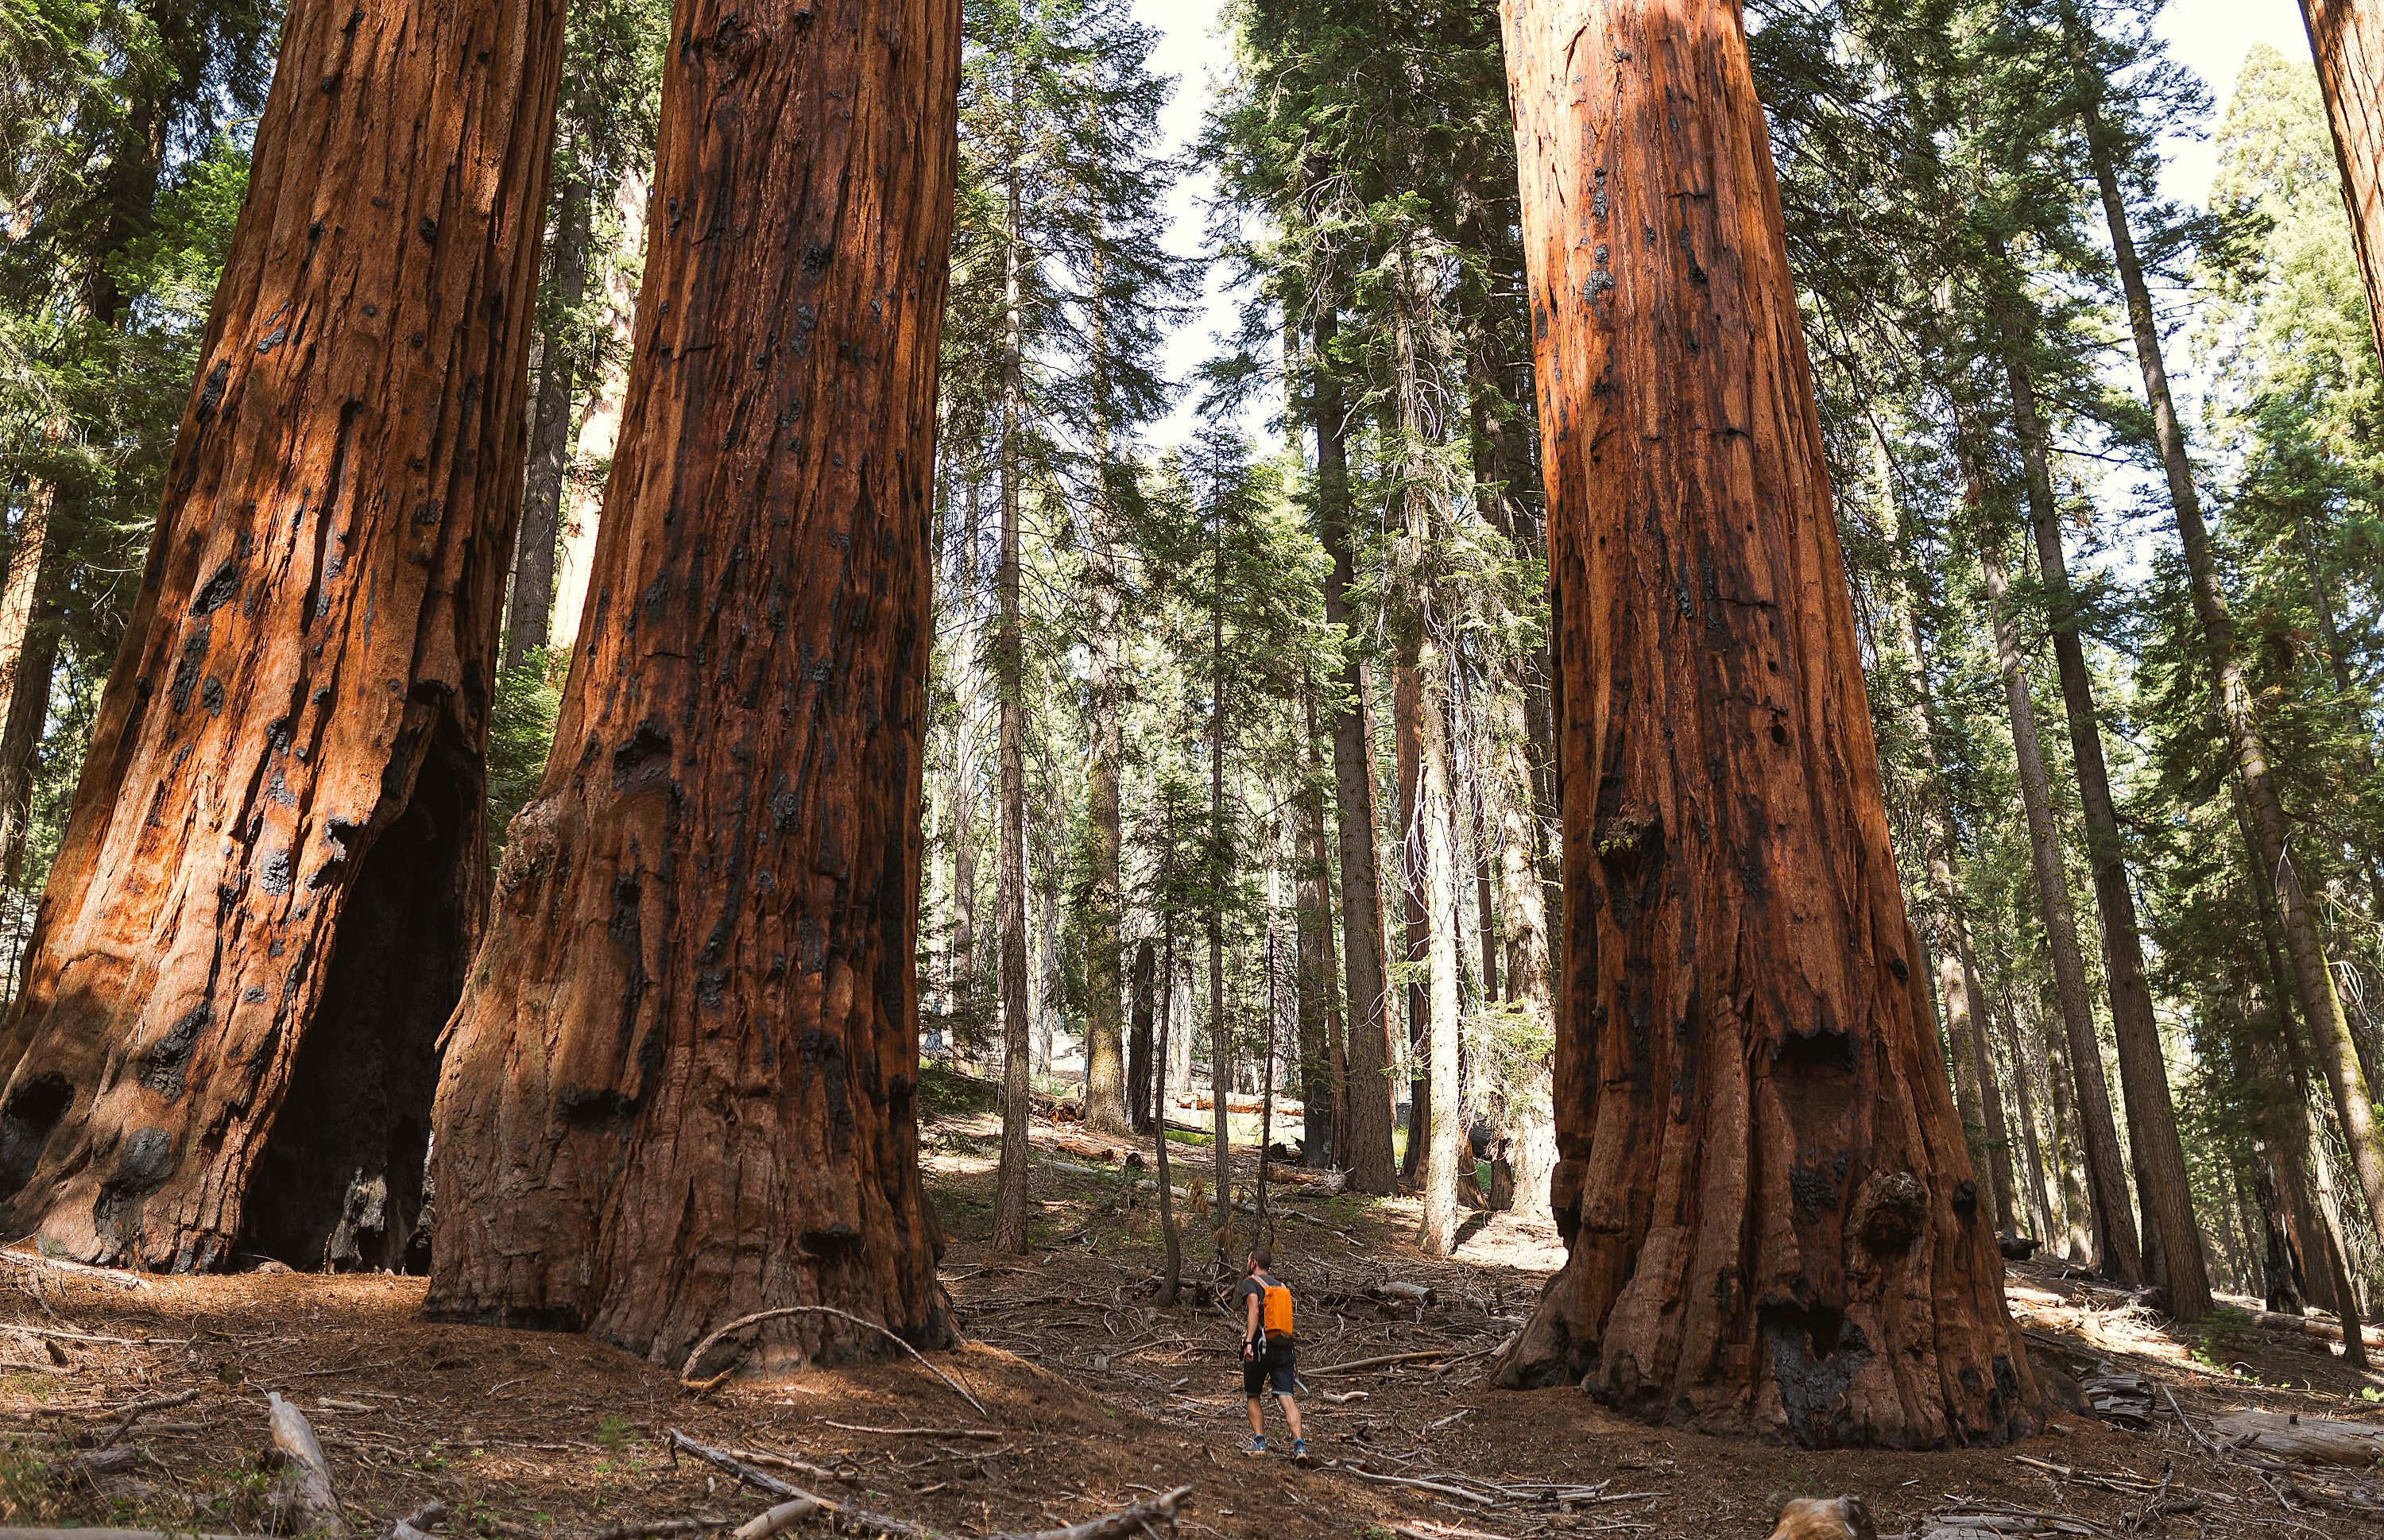 10 of the Tallest Trees in the World